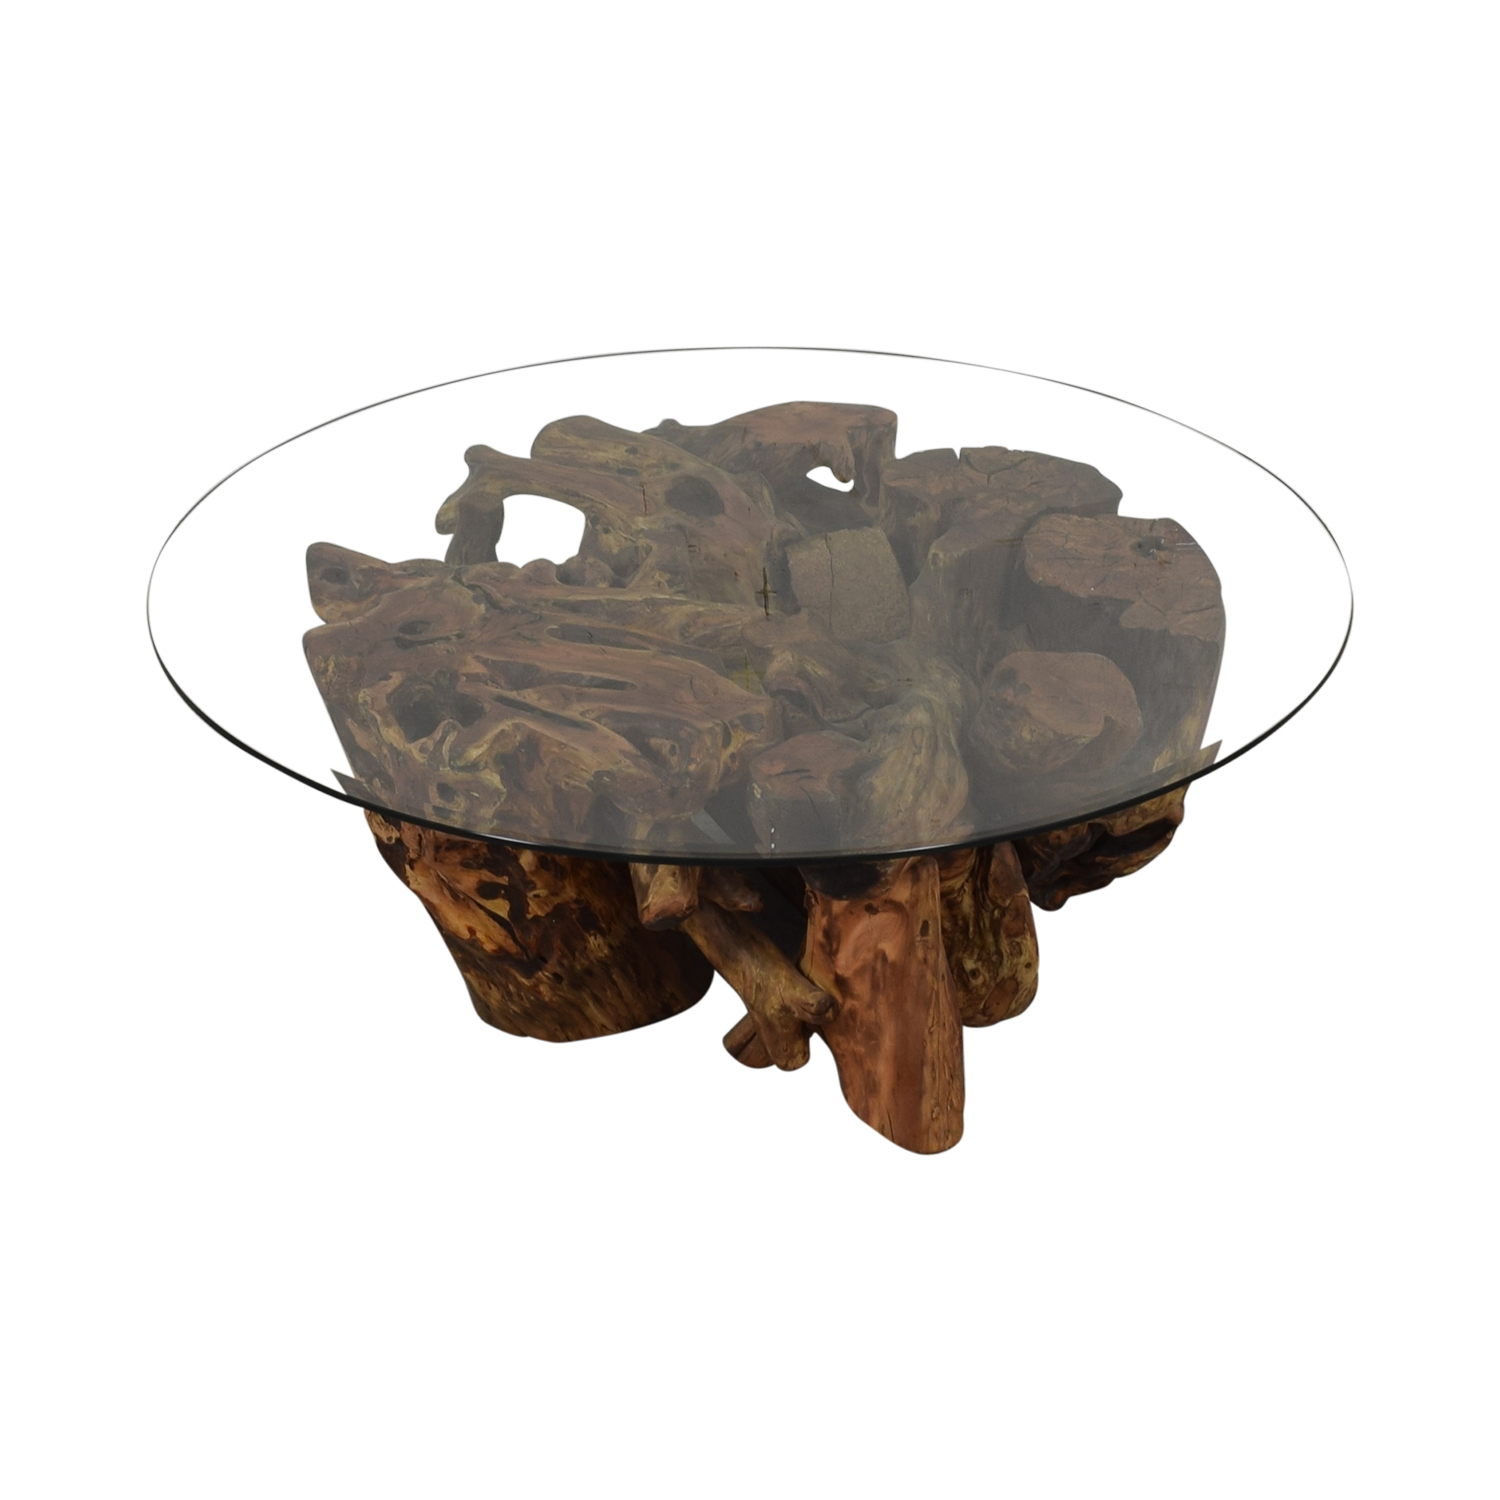 Control Brand Control Brand Wooden Tree Trunk Coffee Table discount